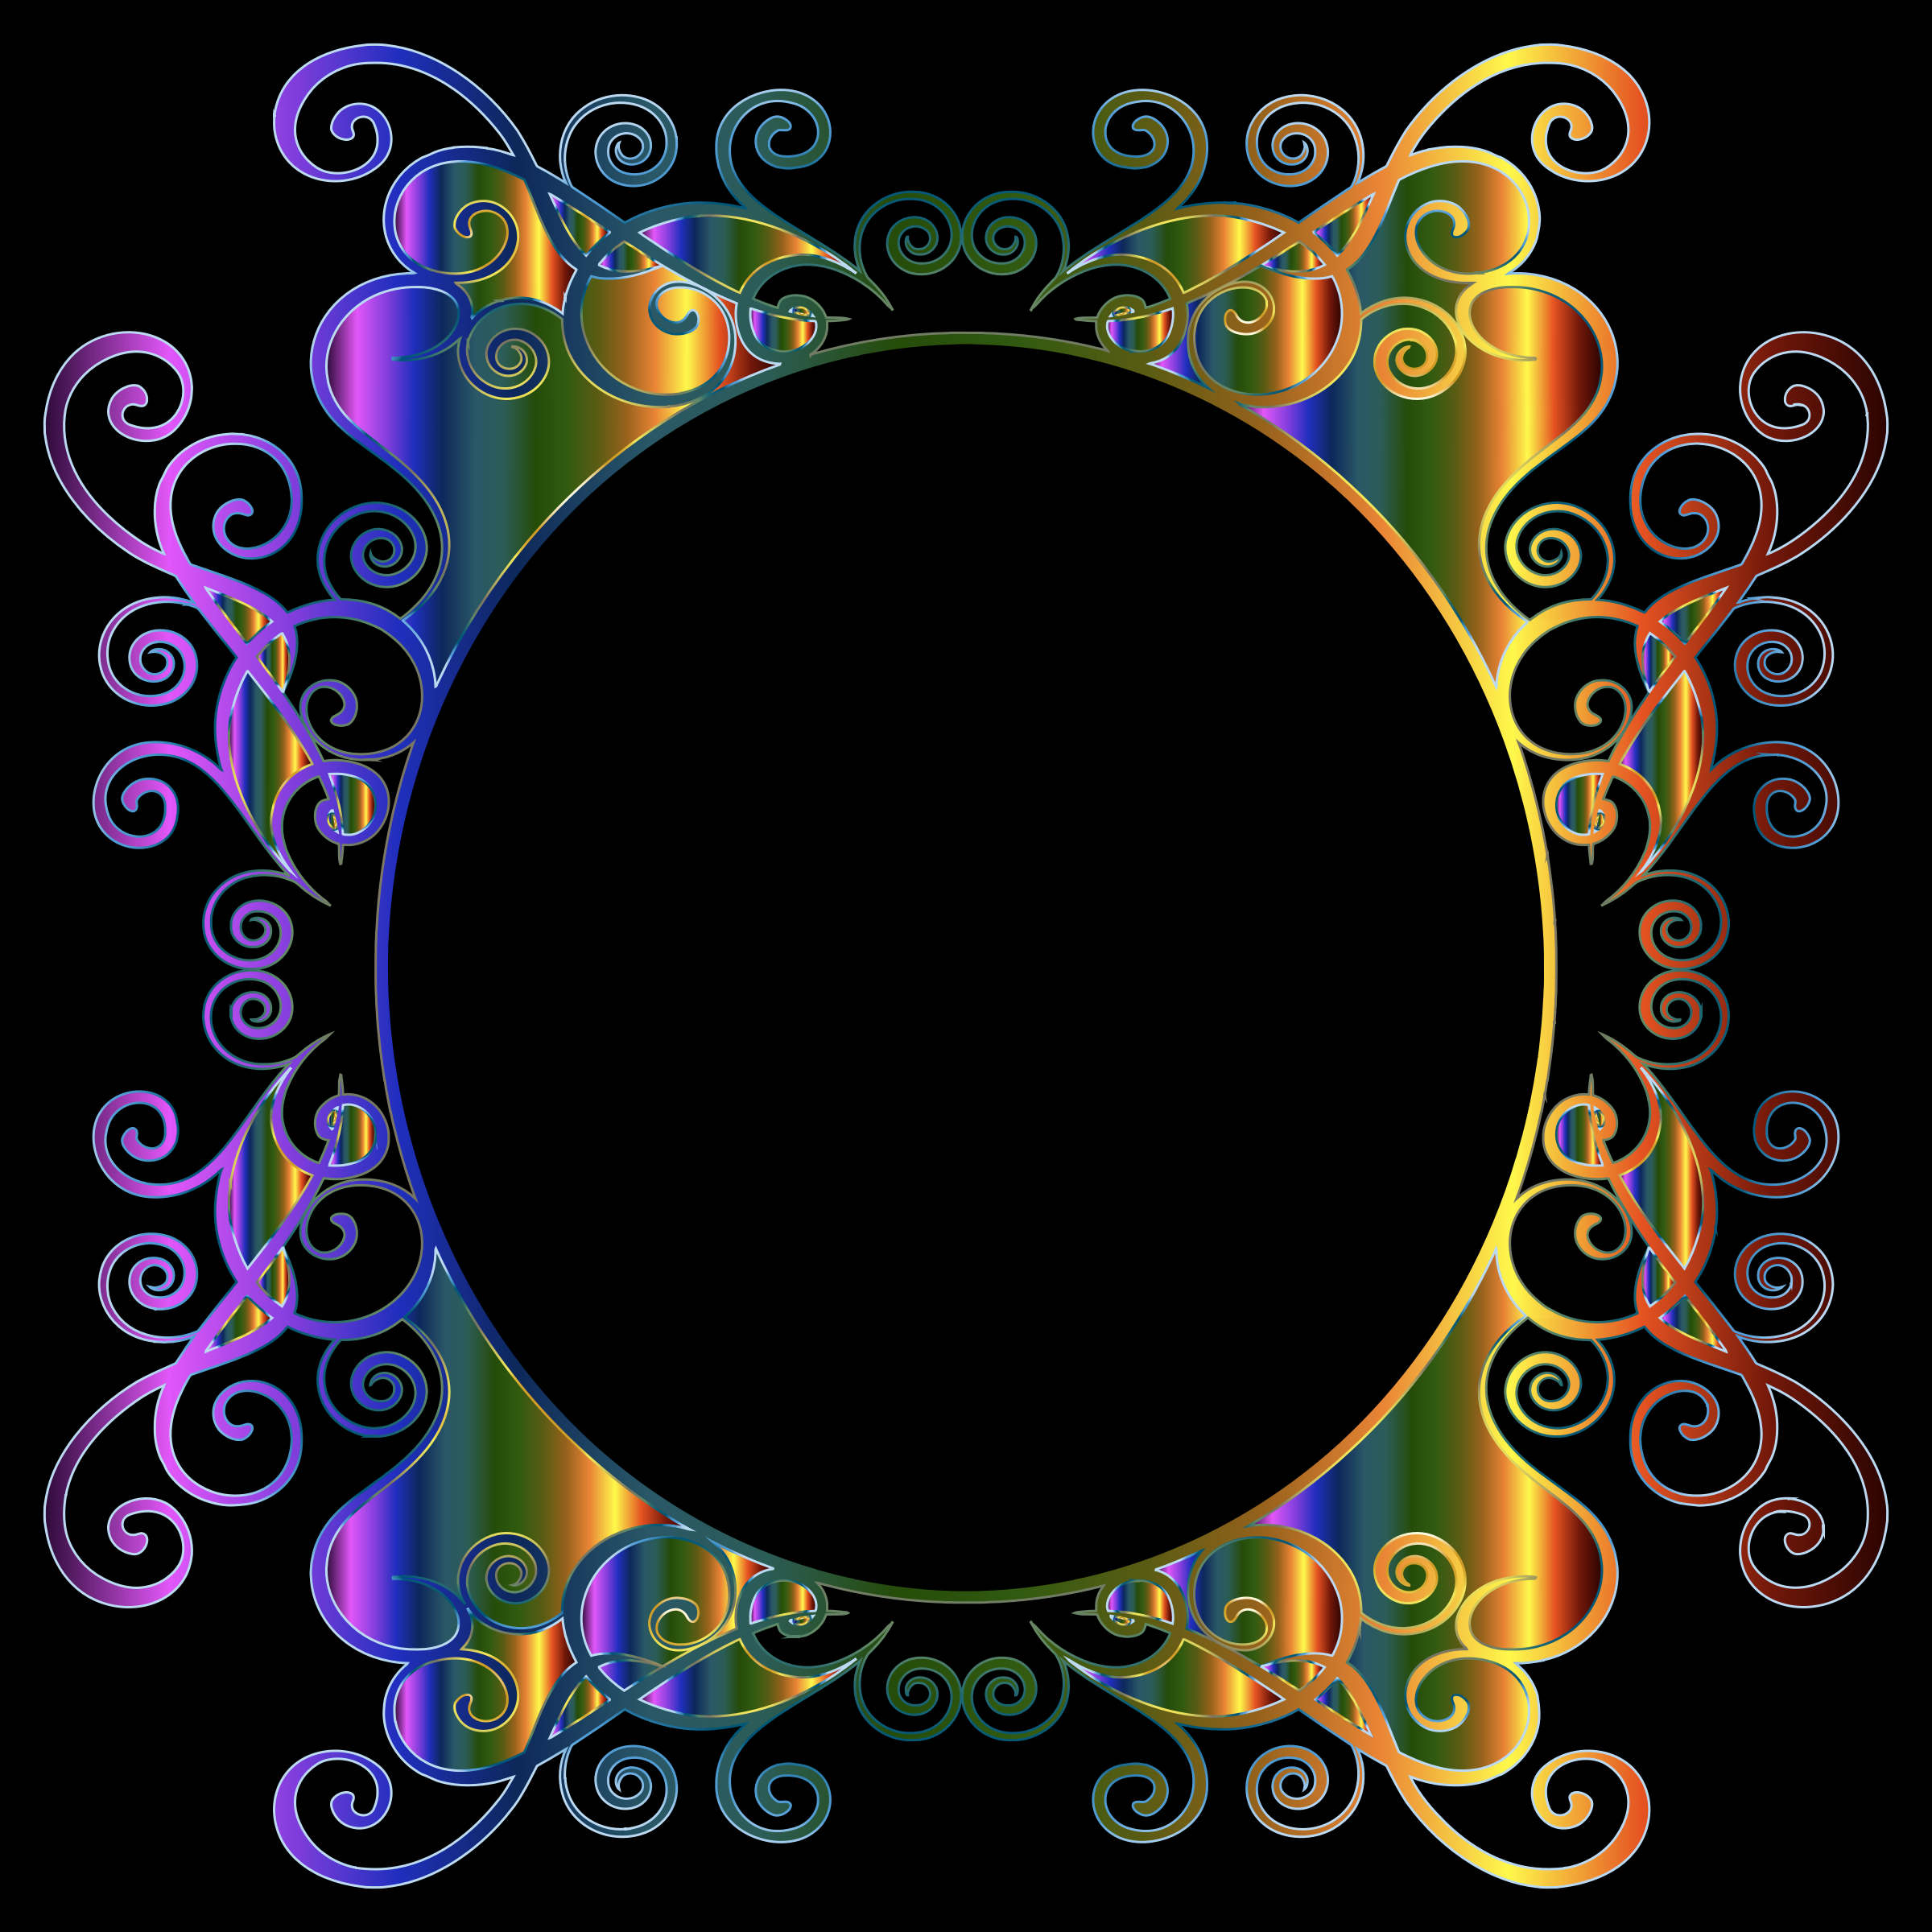 Prismatic Flourish Frame by GDJ